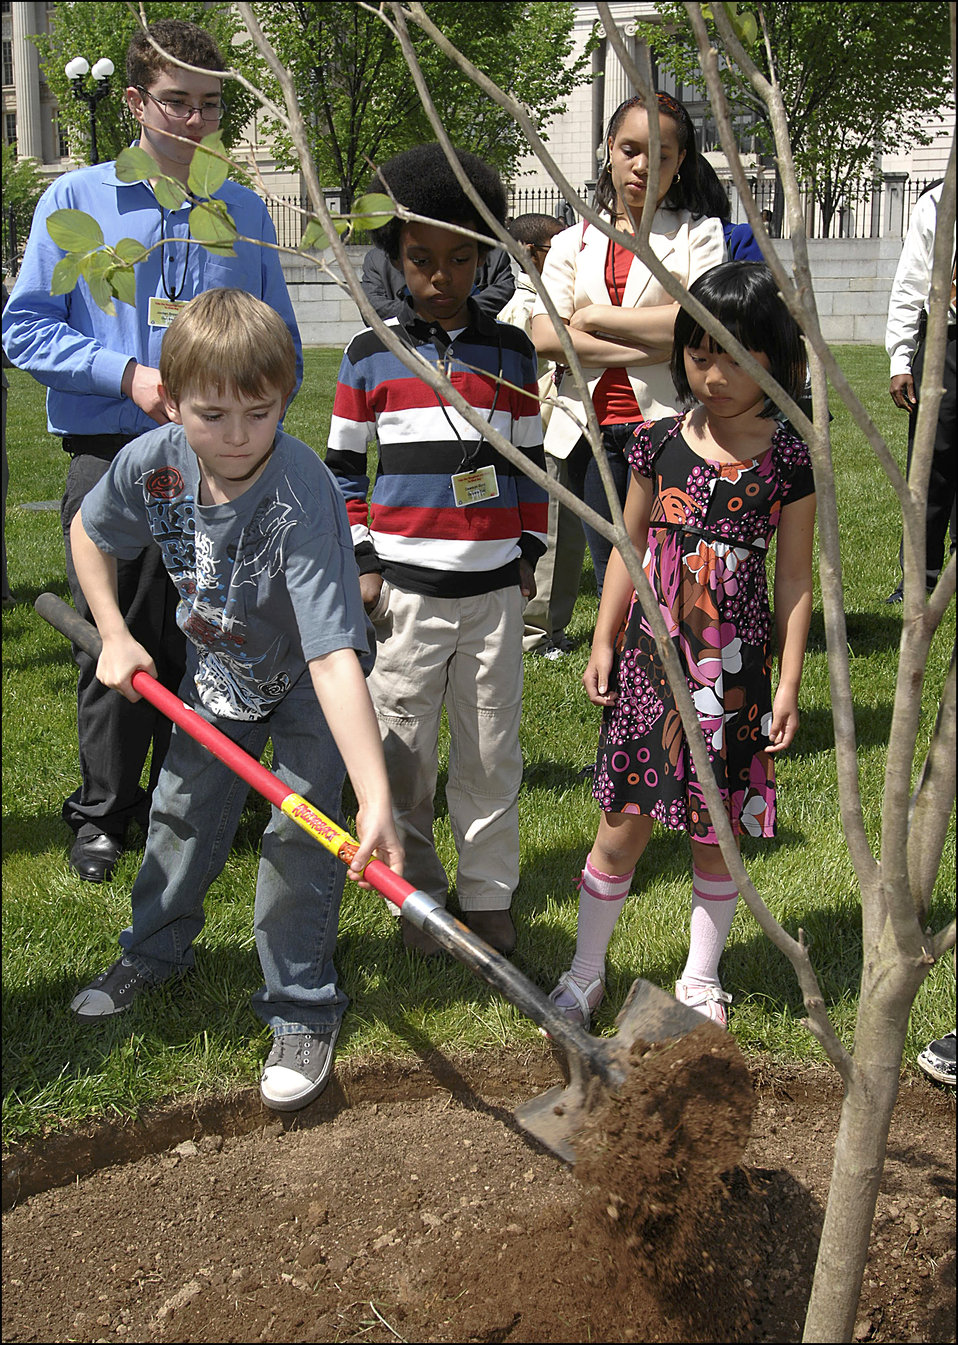 Earth Day/Take Your Children to Work Day, 4/22/10